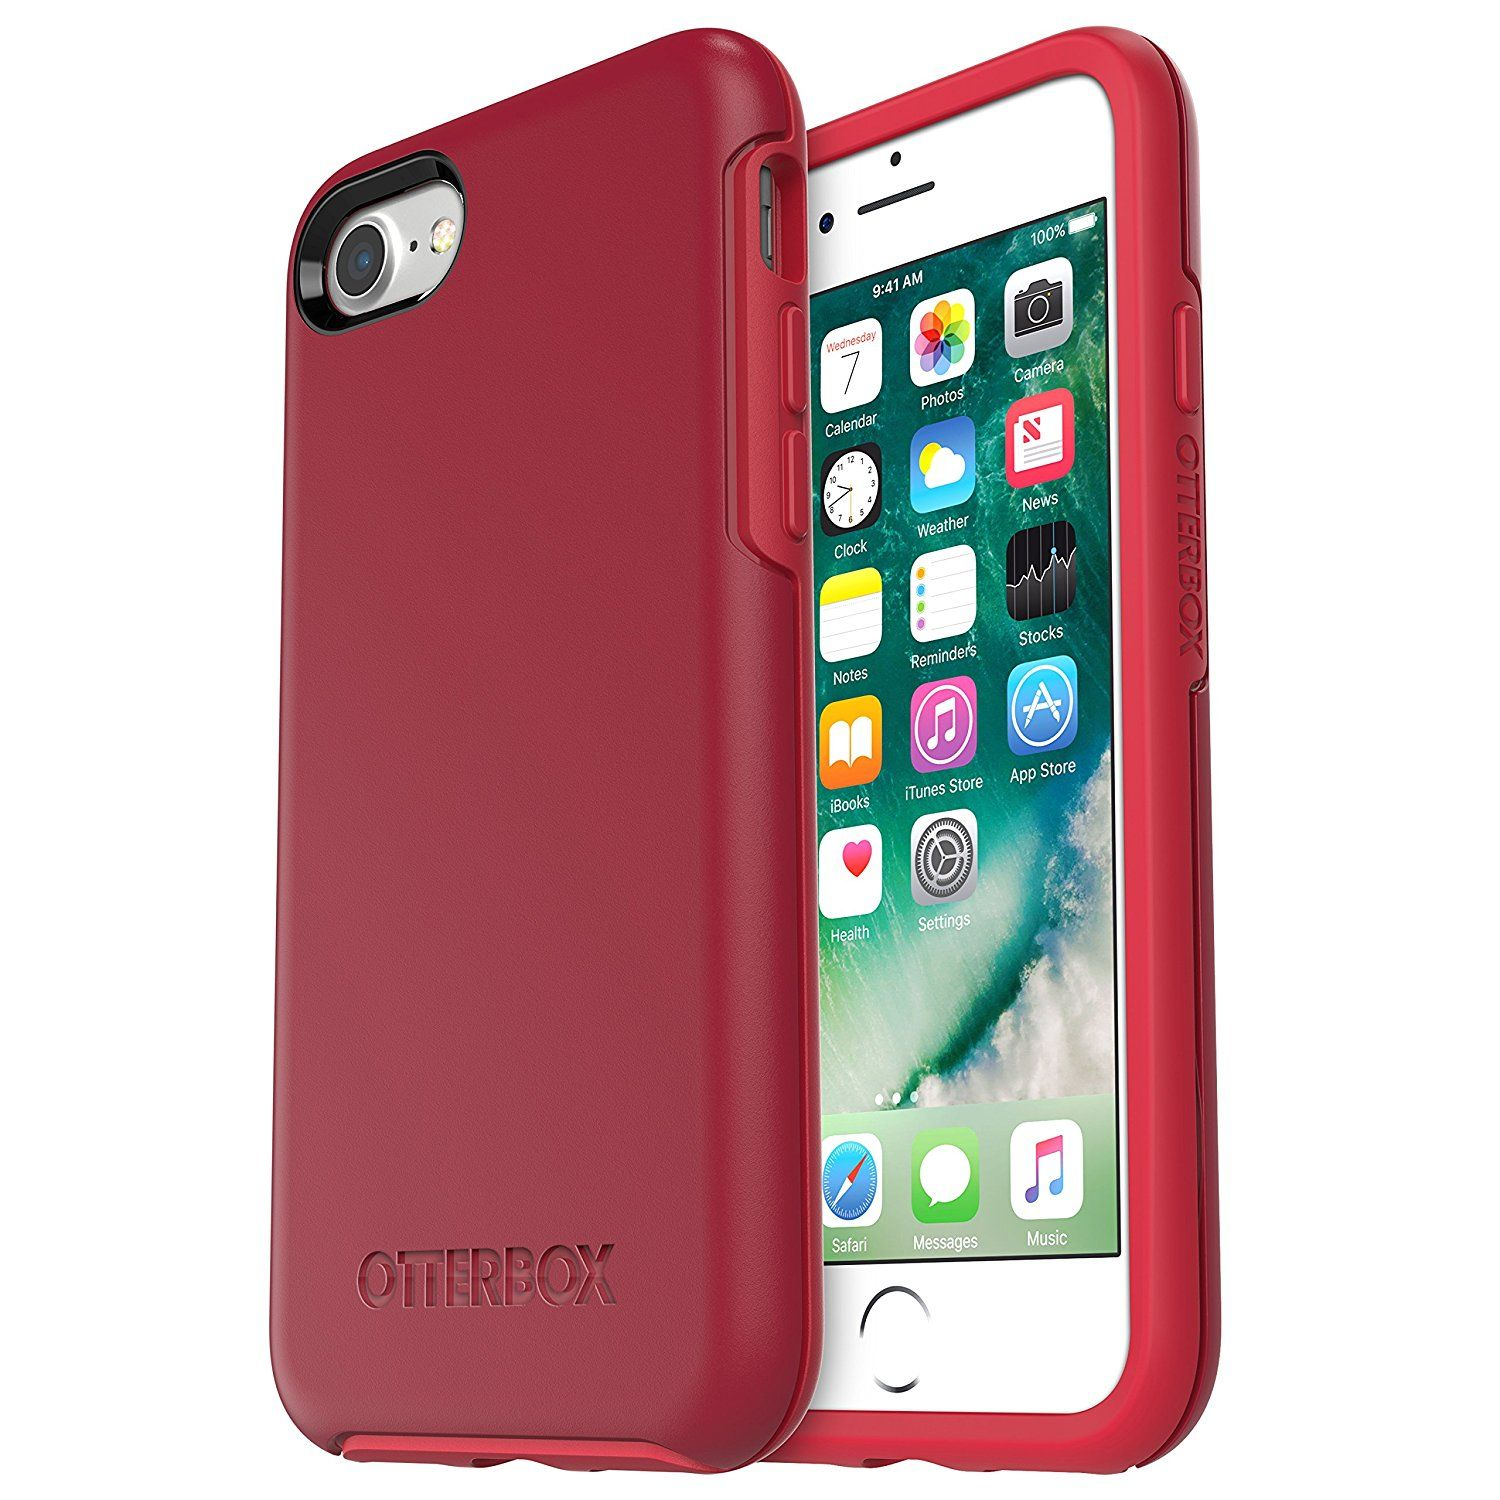 5 best otterbox cases for iphone 8 iphone 8 plus with